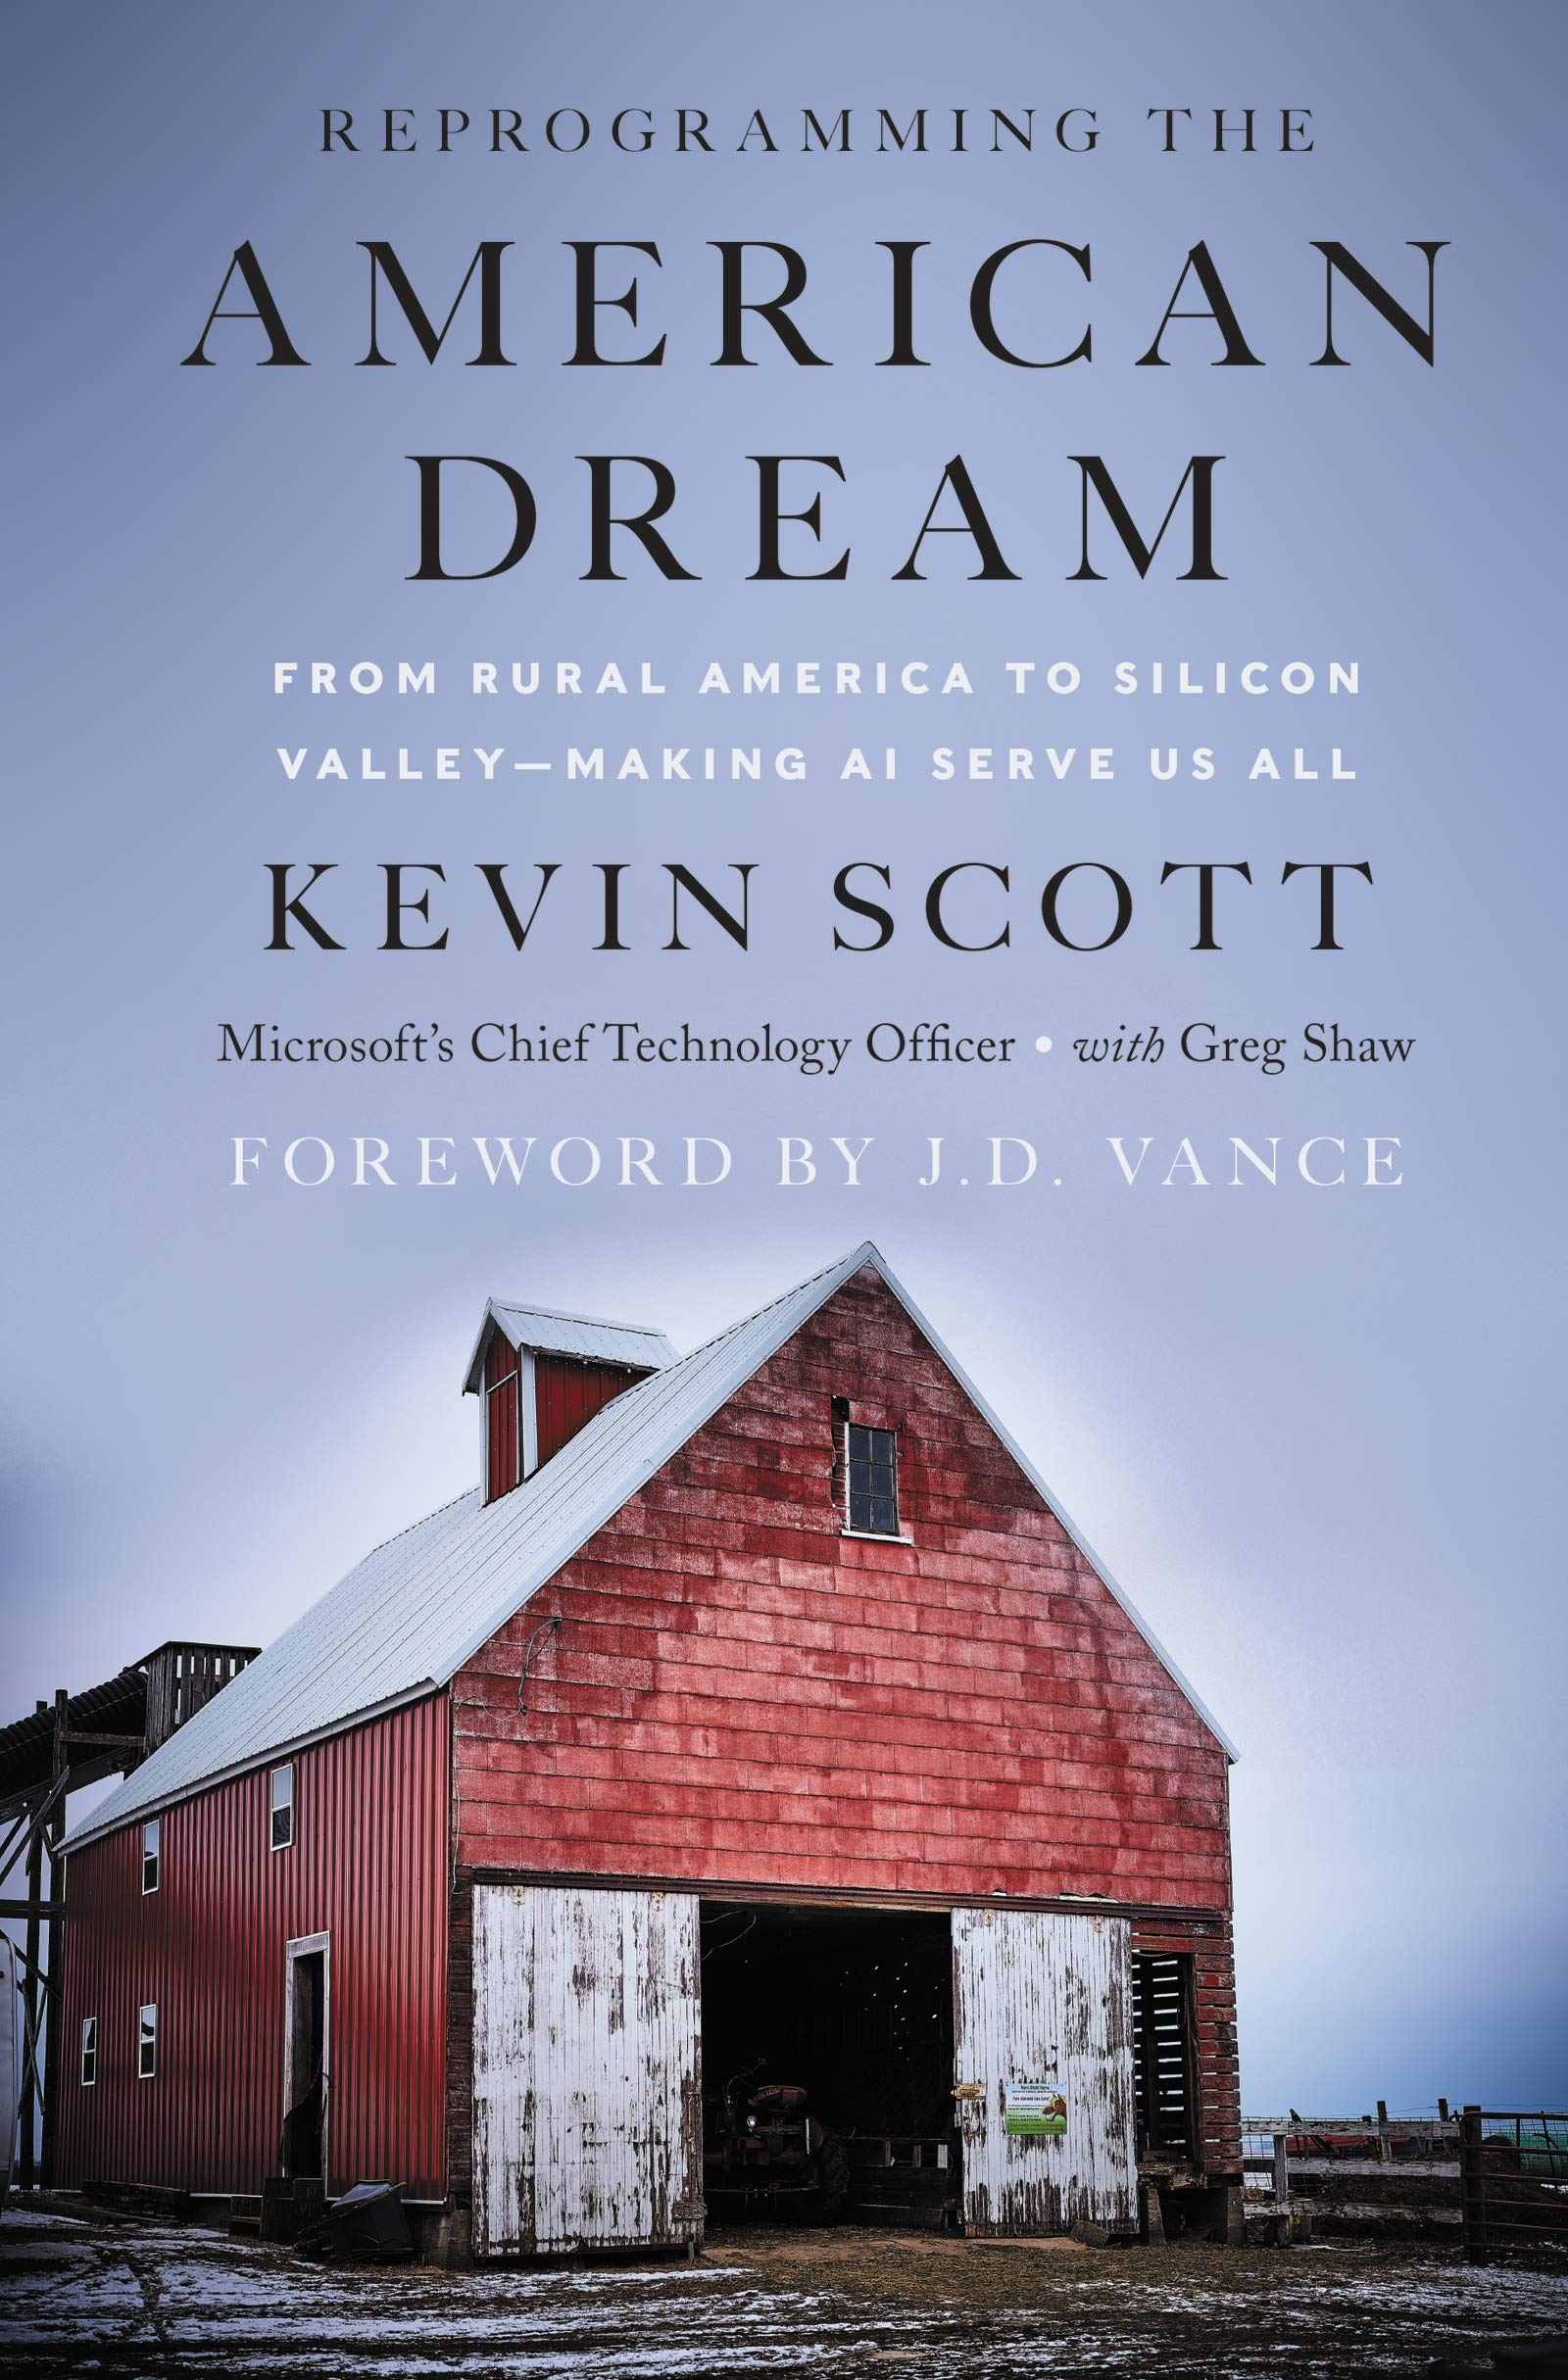 Reprogramming The American Dream: From Rural America to Silicon Valley—Making AI Serve Us All